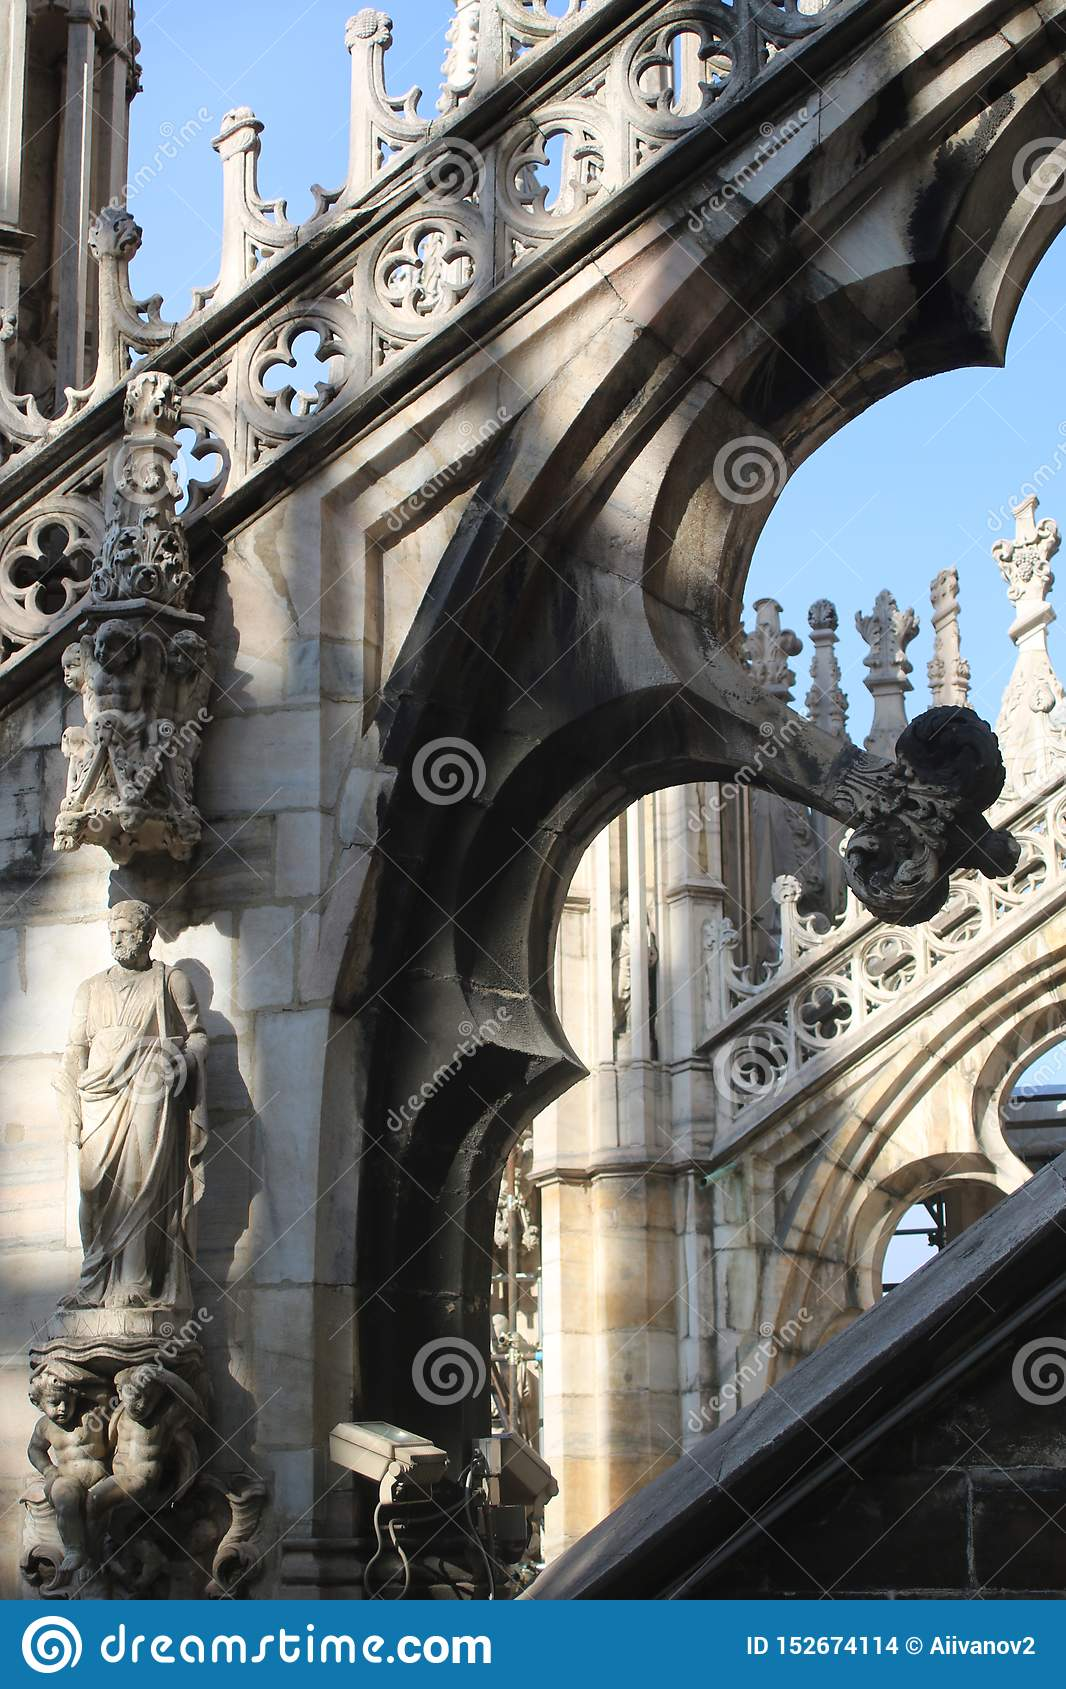 The sculptural decoration and a flying buttresses of the Milan Cathedral